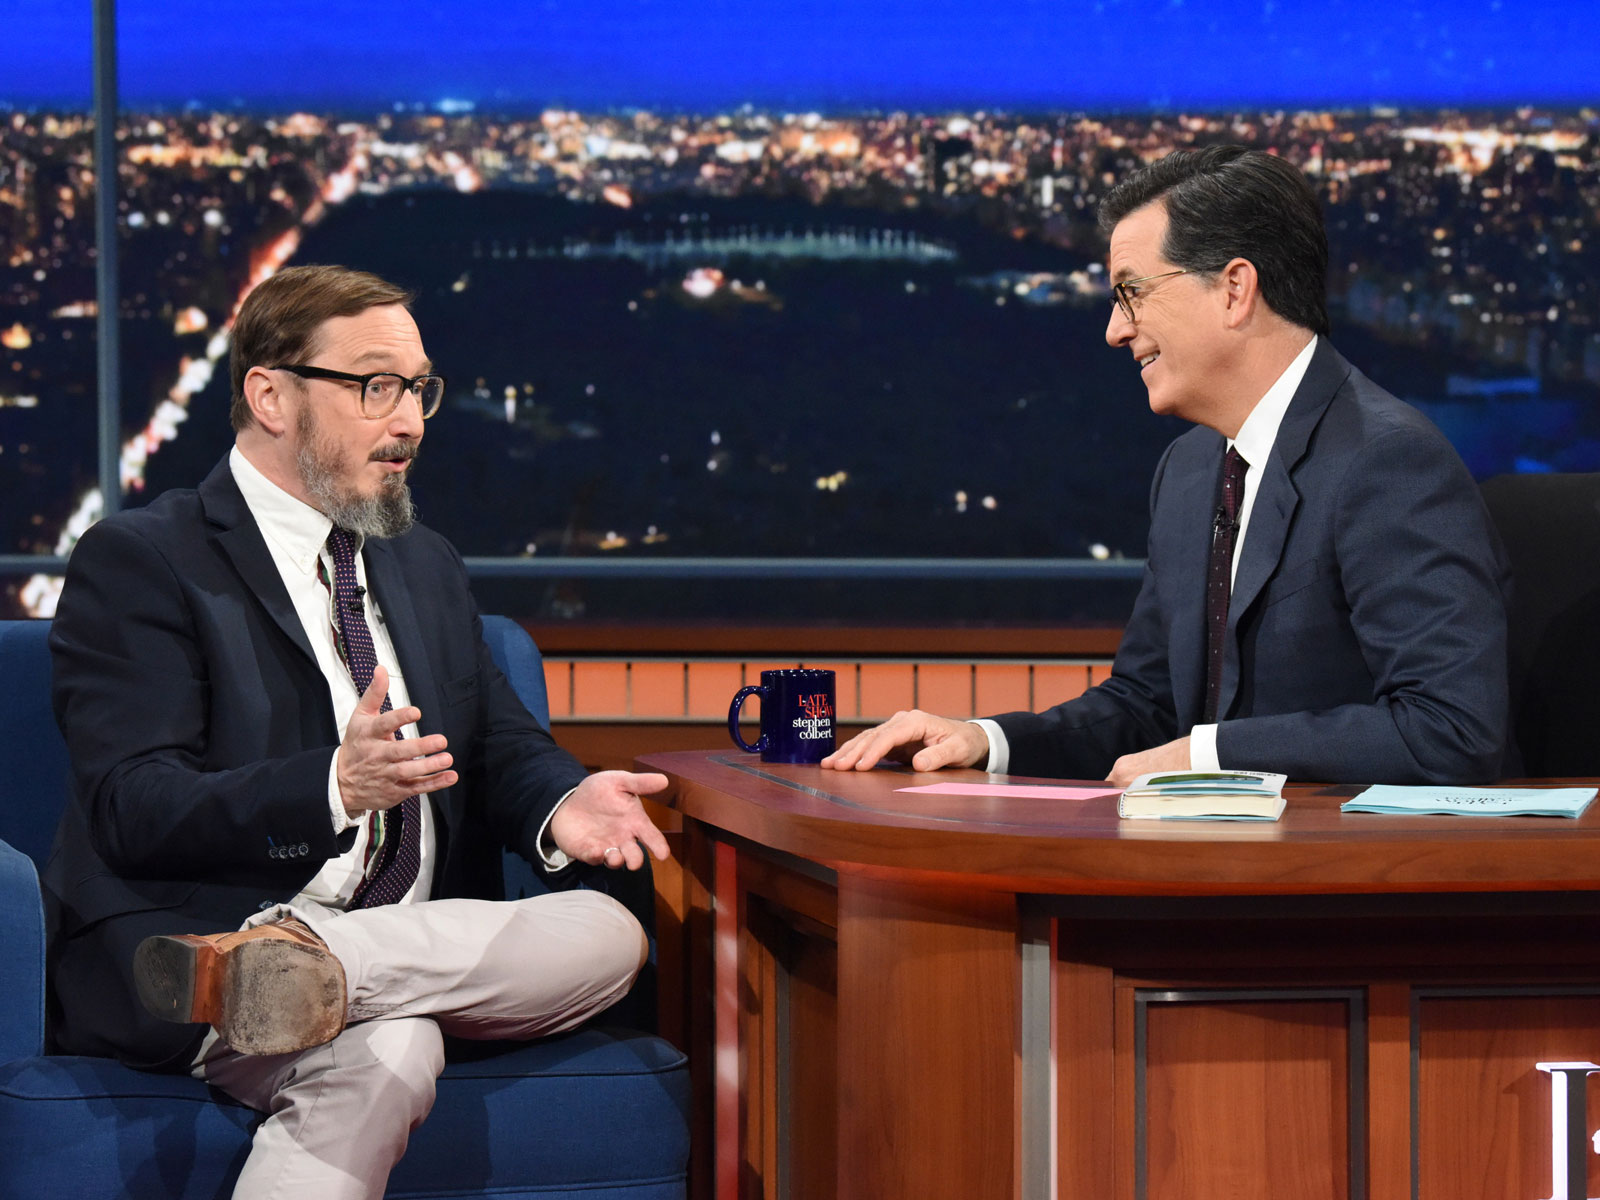 Is a Hot Dog a Sandwich? Stephen Colbert and John Hodgman Weigh In